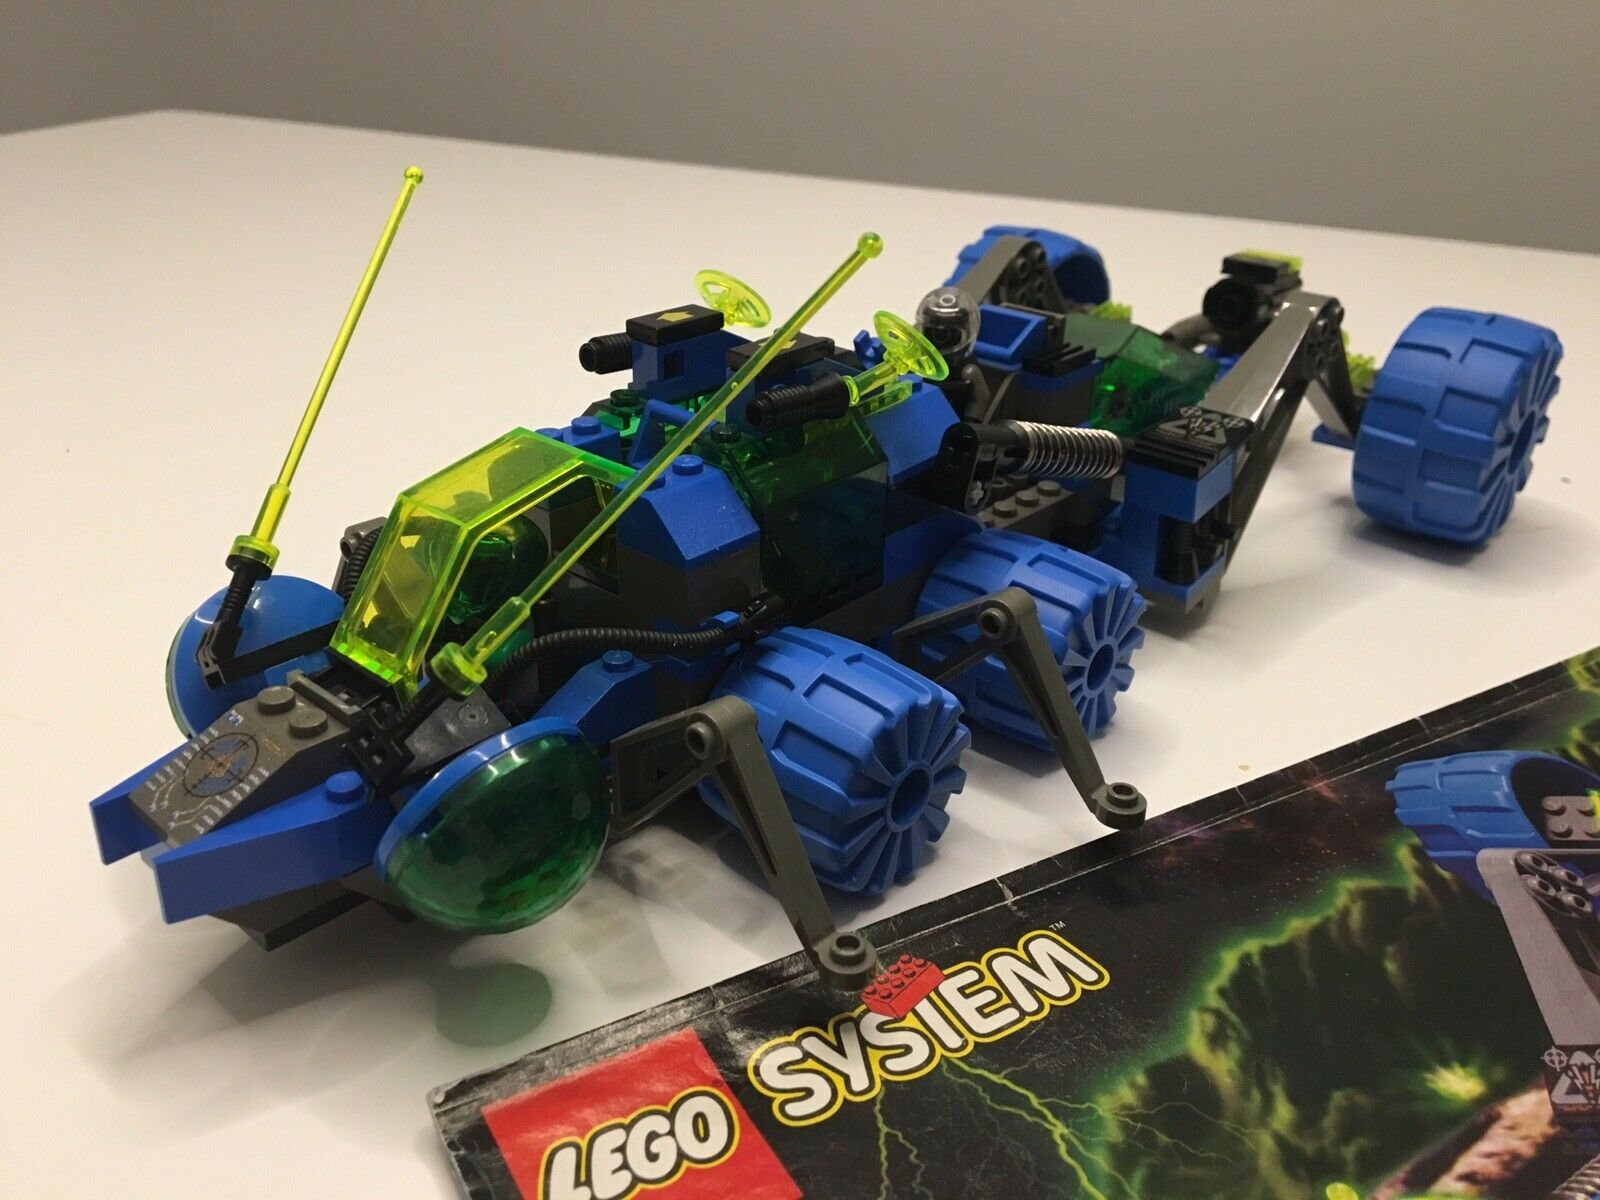 Vintage Lego 6919 Planetary Prowler System